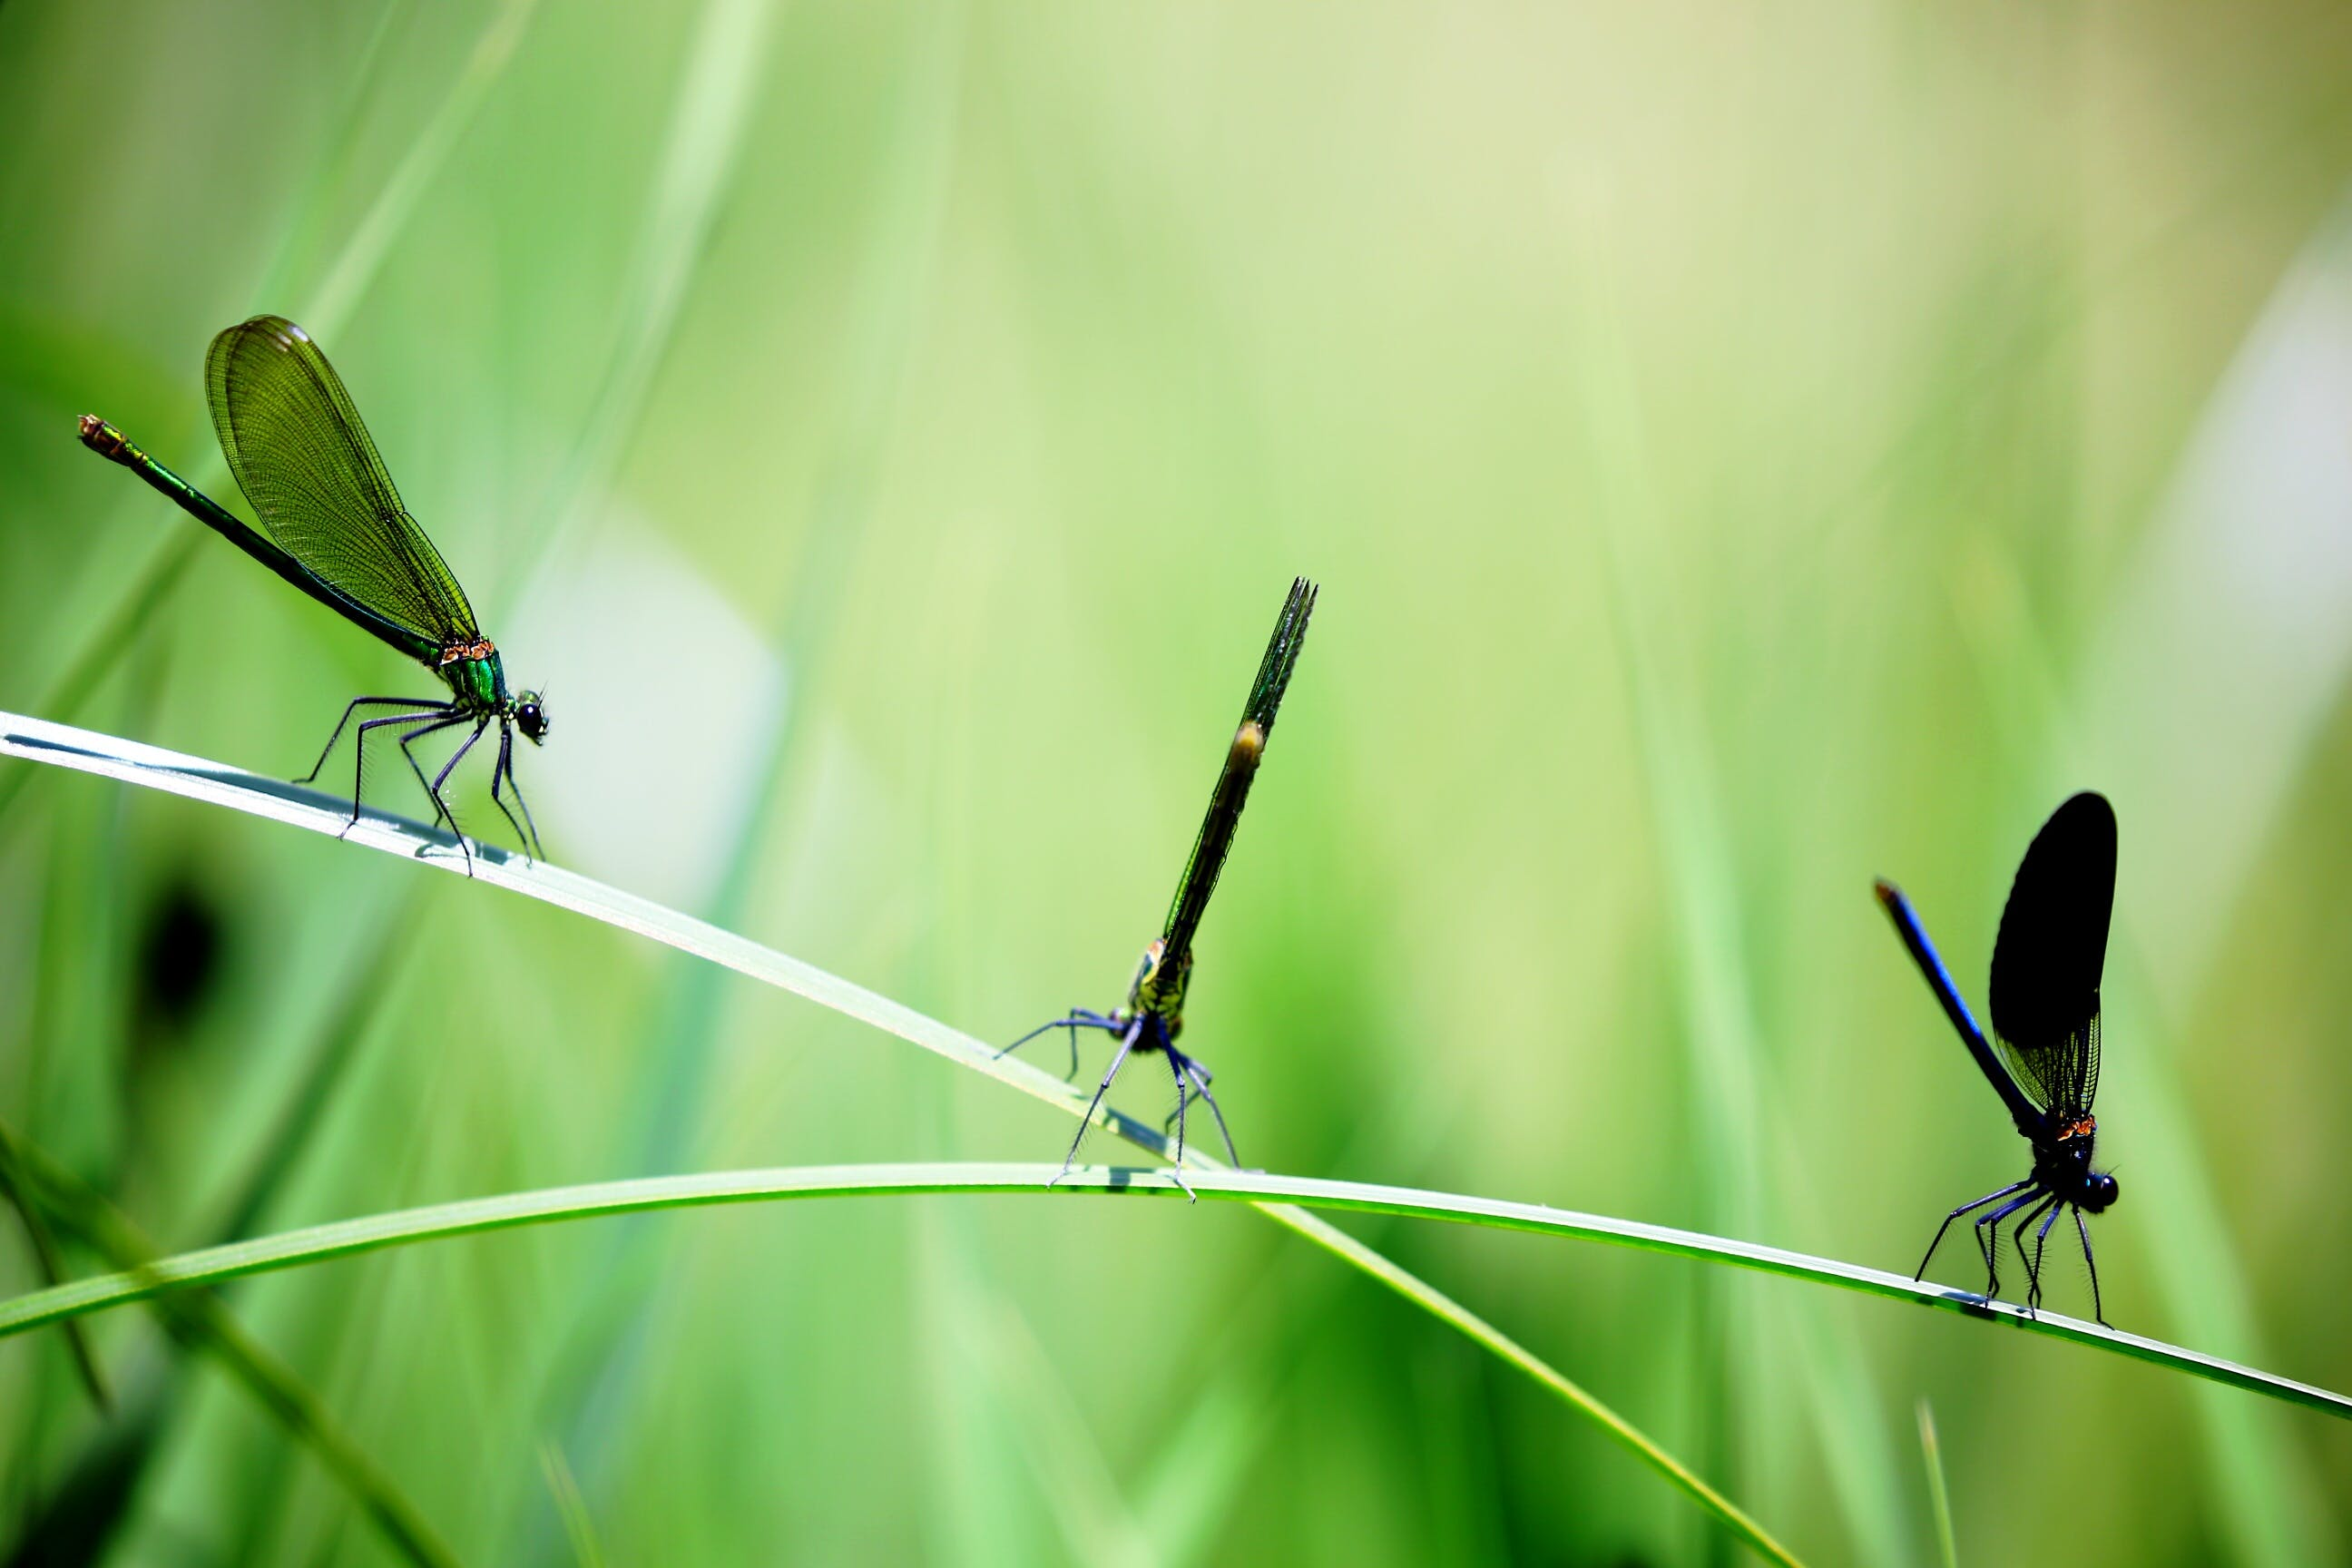 3 Dragon Flies on the Grass